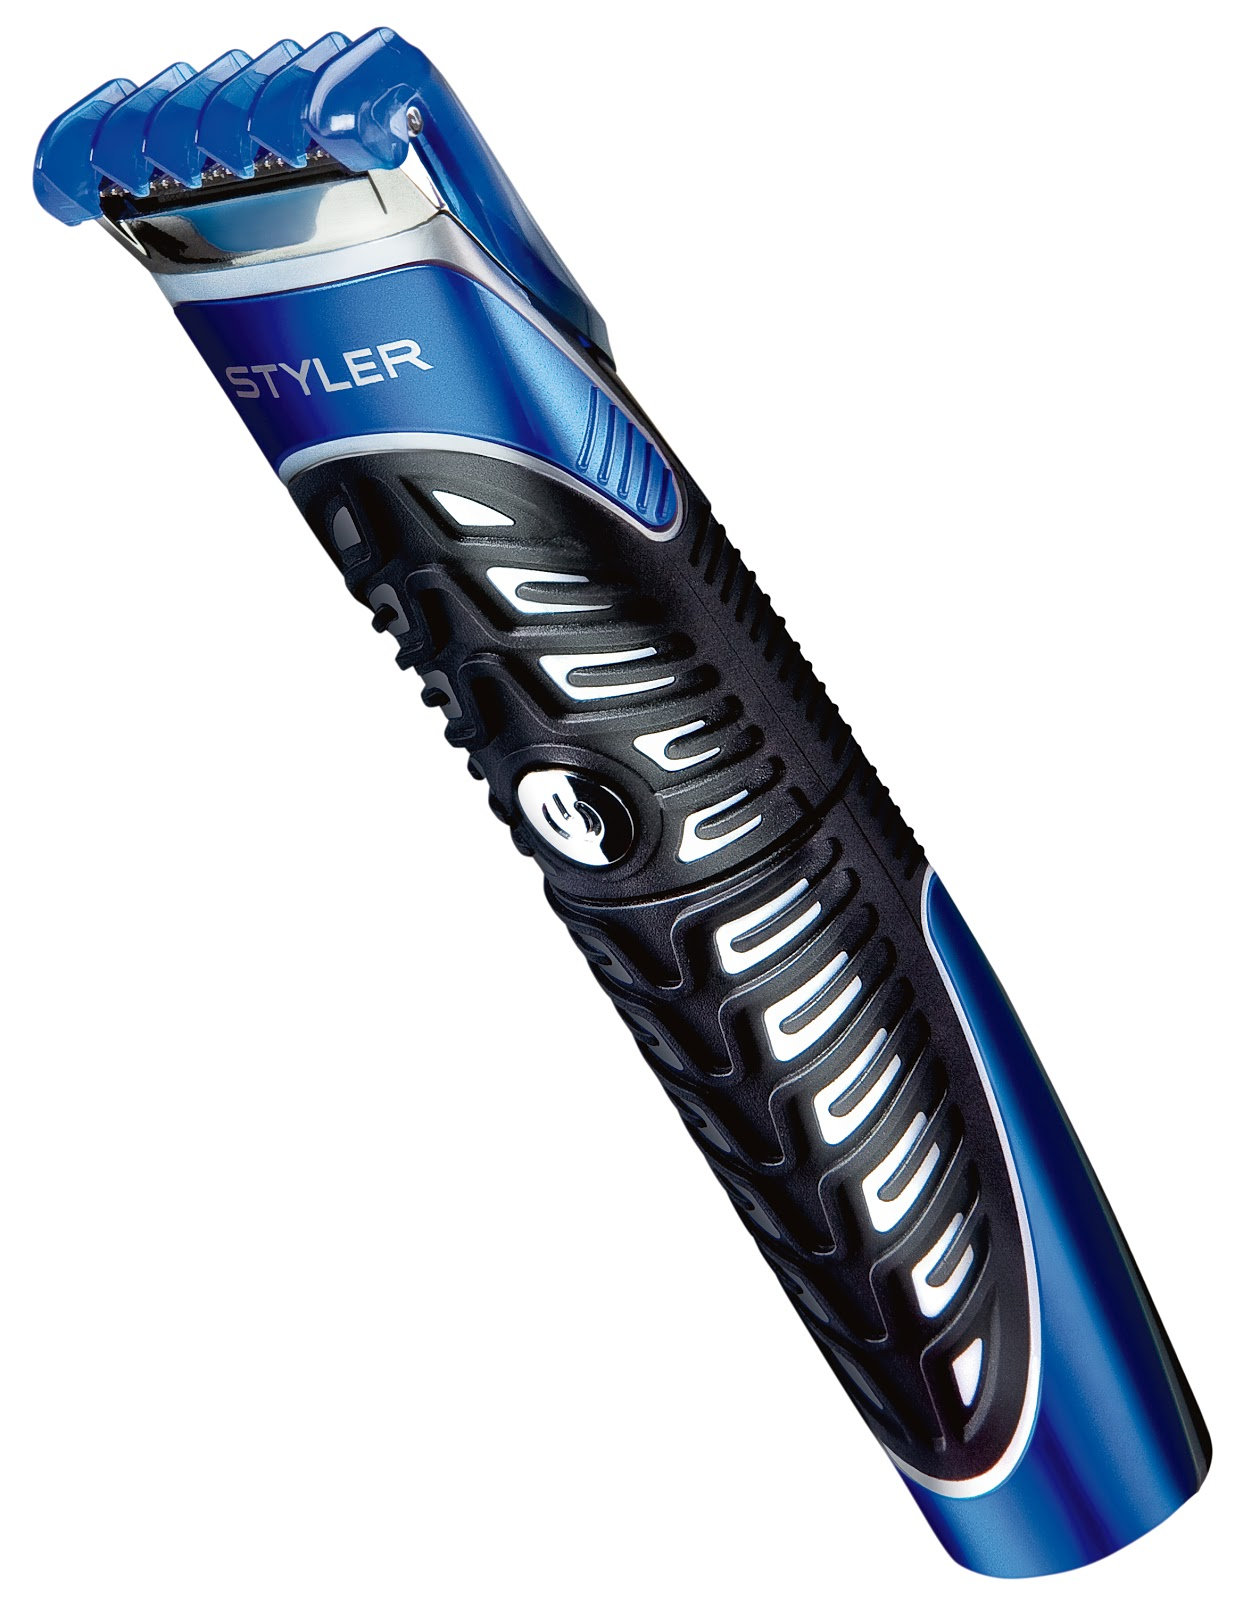 Dad of Divas' Reviews: Gillette Fusion ProGlide Styler - The Perfect ...